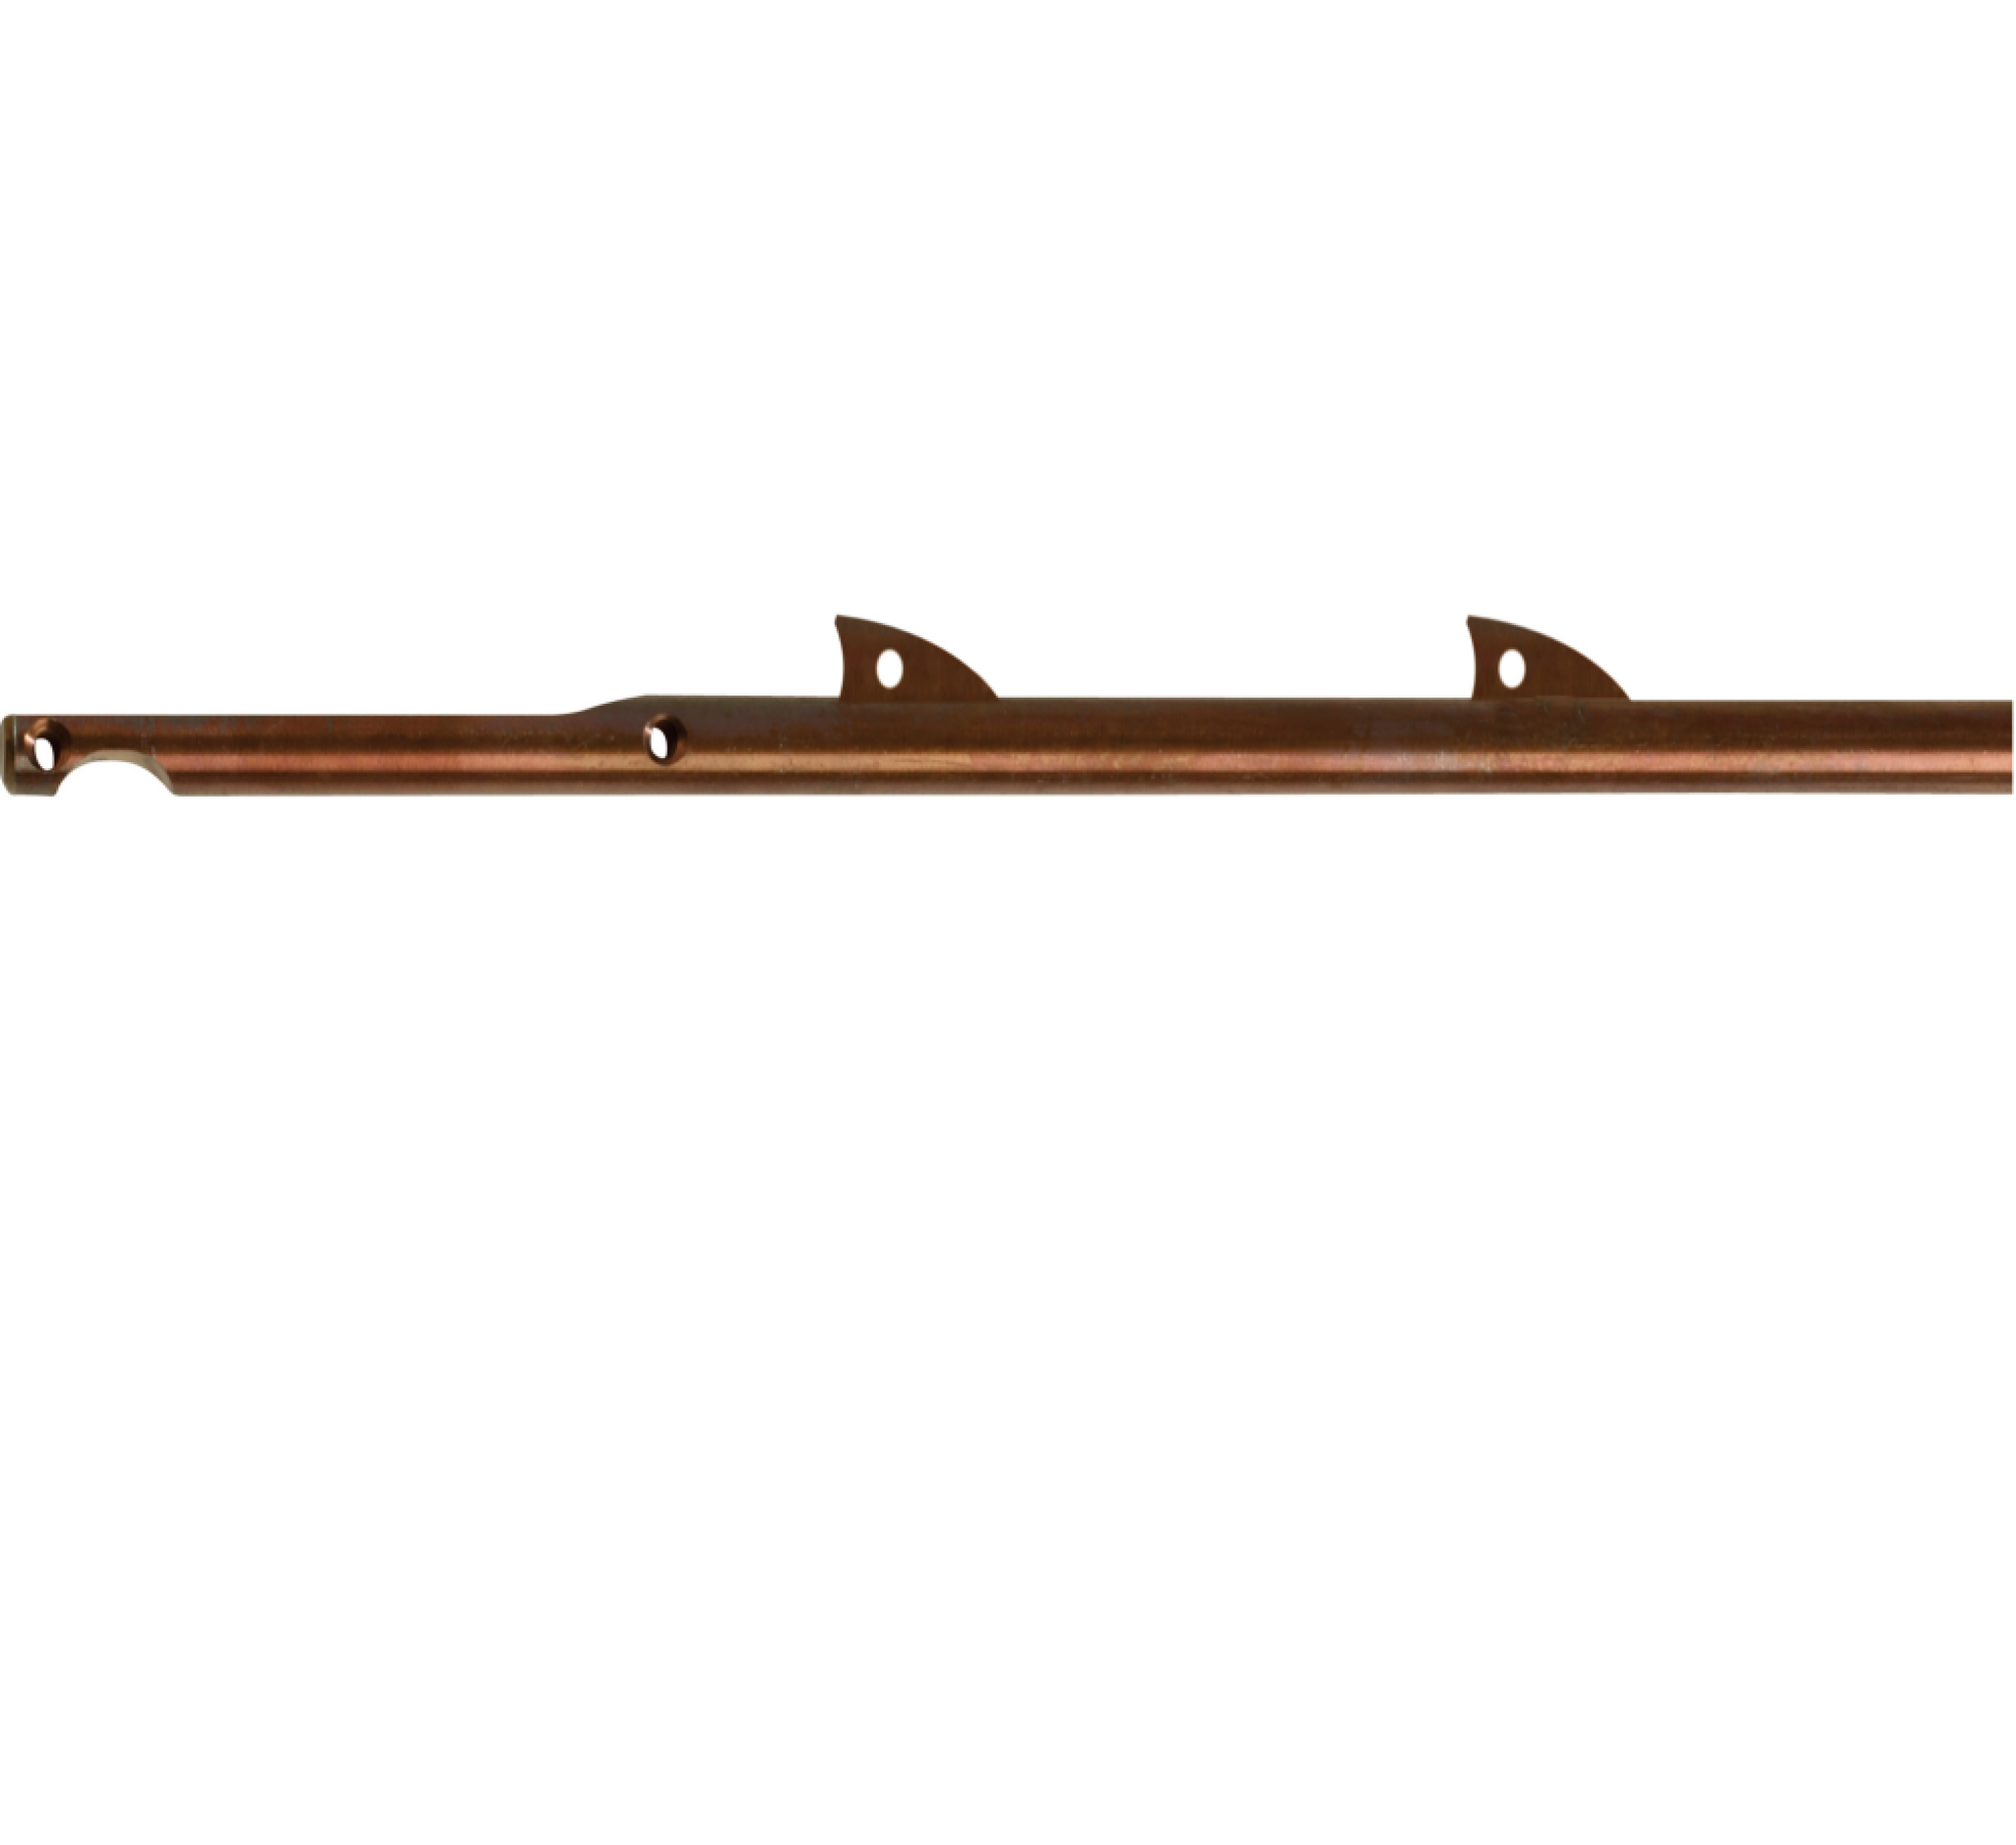 Inox Shafts with fins for Cressi Cherokee speargun